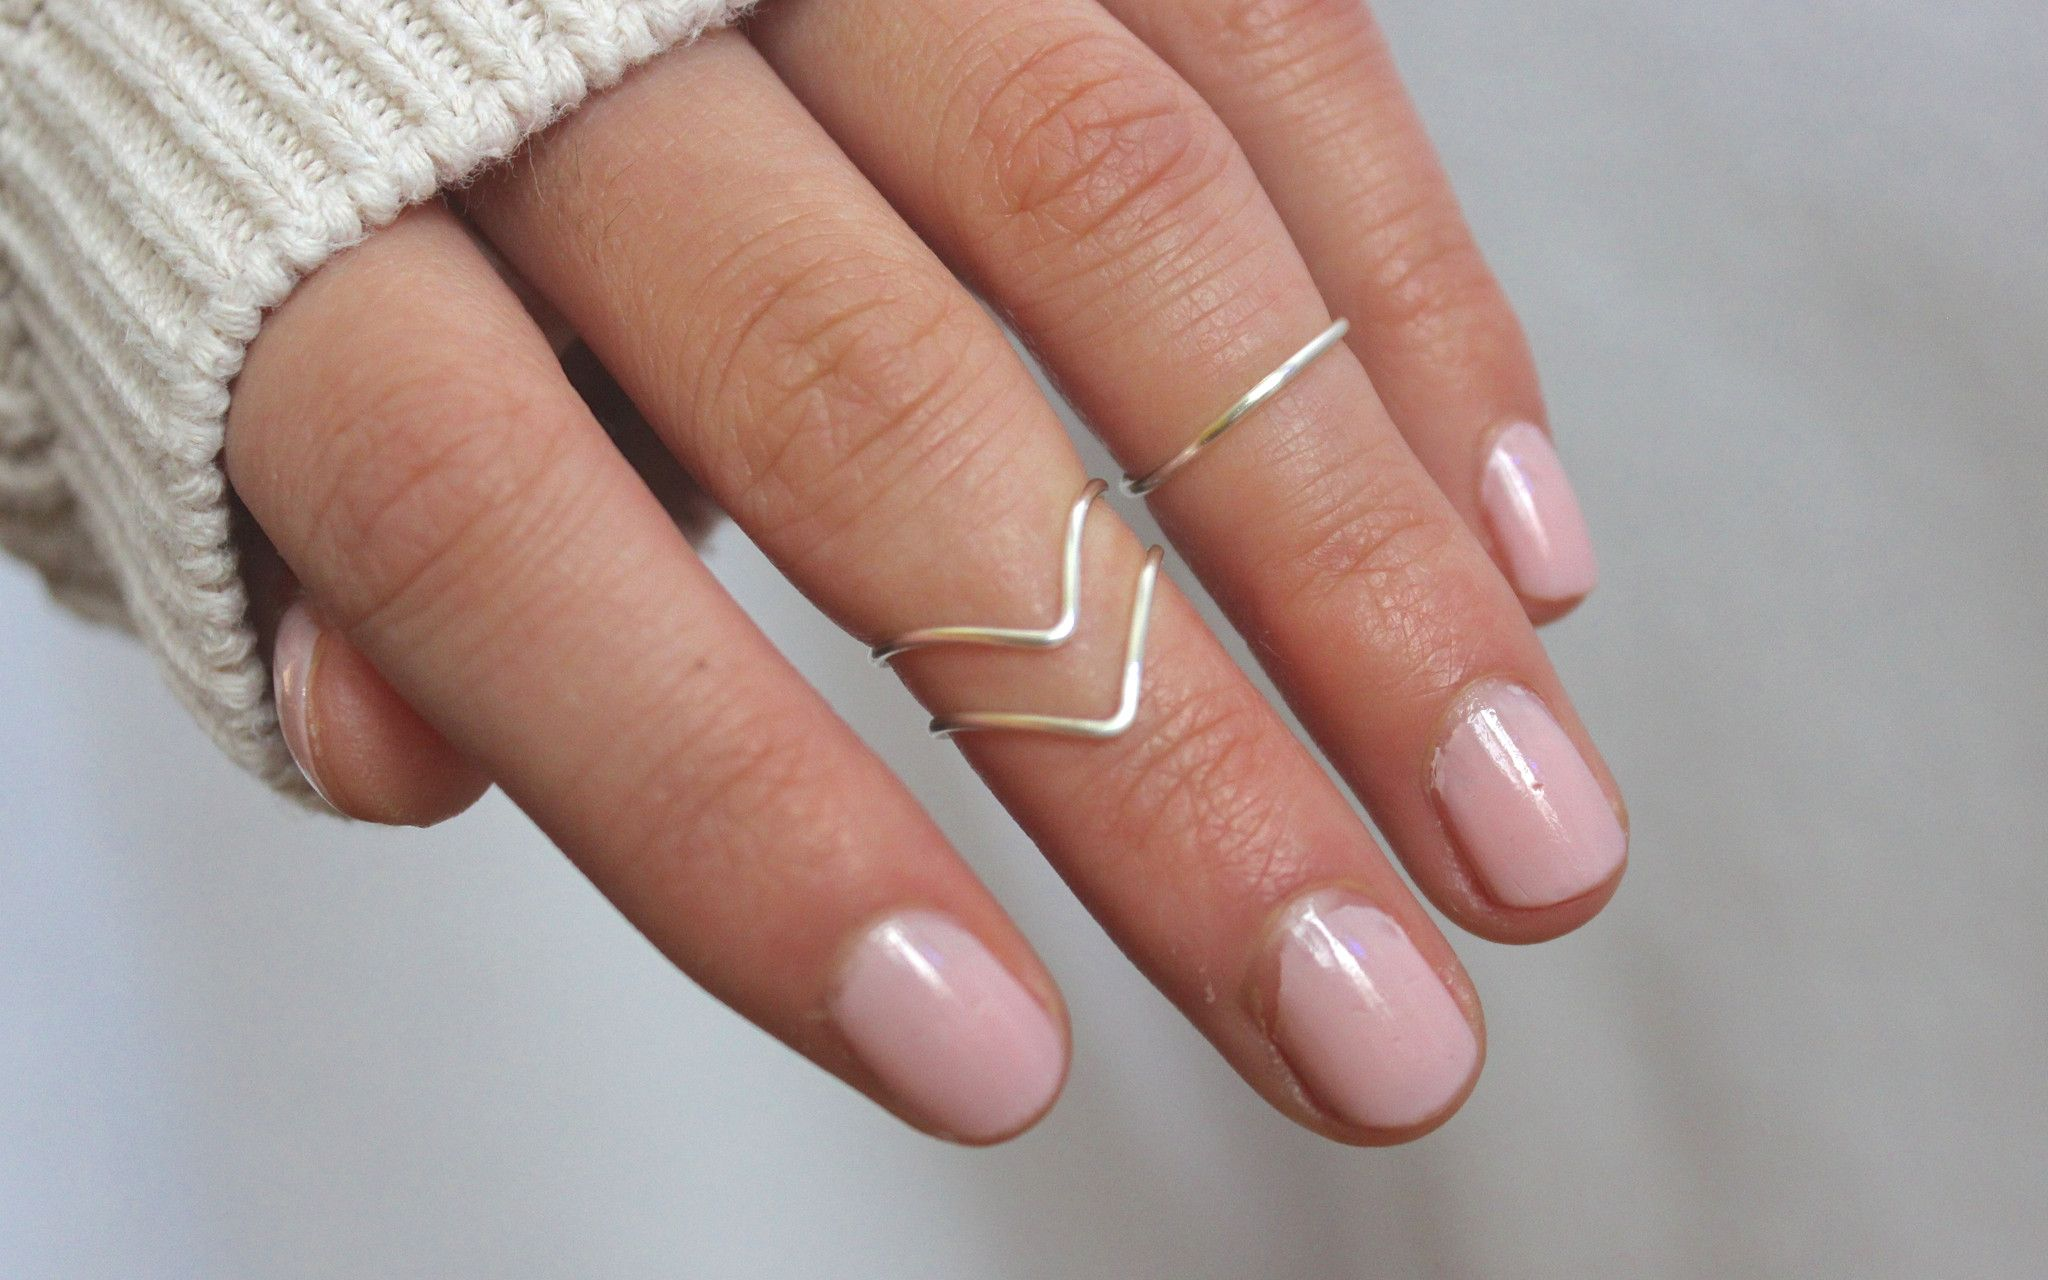 A set of three knuckle rings! (2 chevron style and 1 band style) These are silver knuckle rings made out of non-tarnish silver plated wire. They are adjustable. Your knuckle ring size is typically 3 s